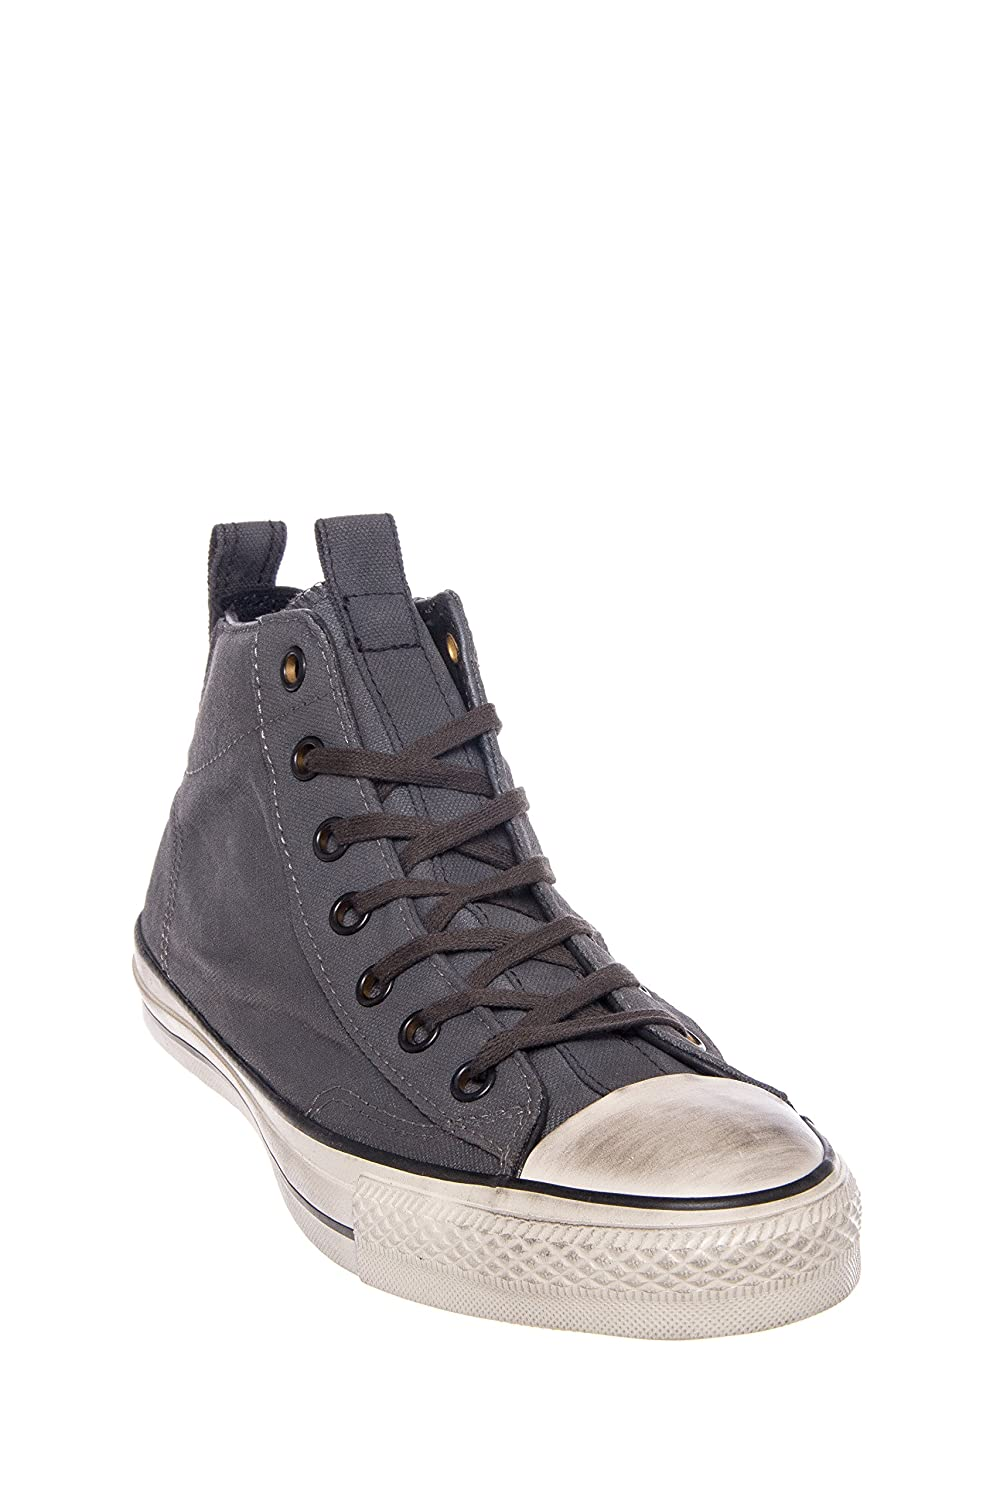 fbbef8fb4c20c5 Converse by John Varvatos Mid Cotton AS Men s Shoes Gargoyle 145376C   Amazon.ca  Shoes   Handbags